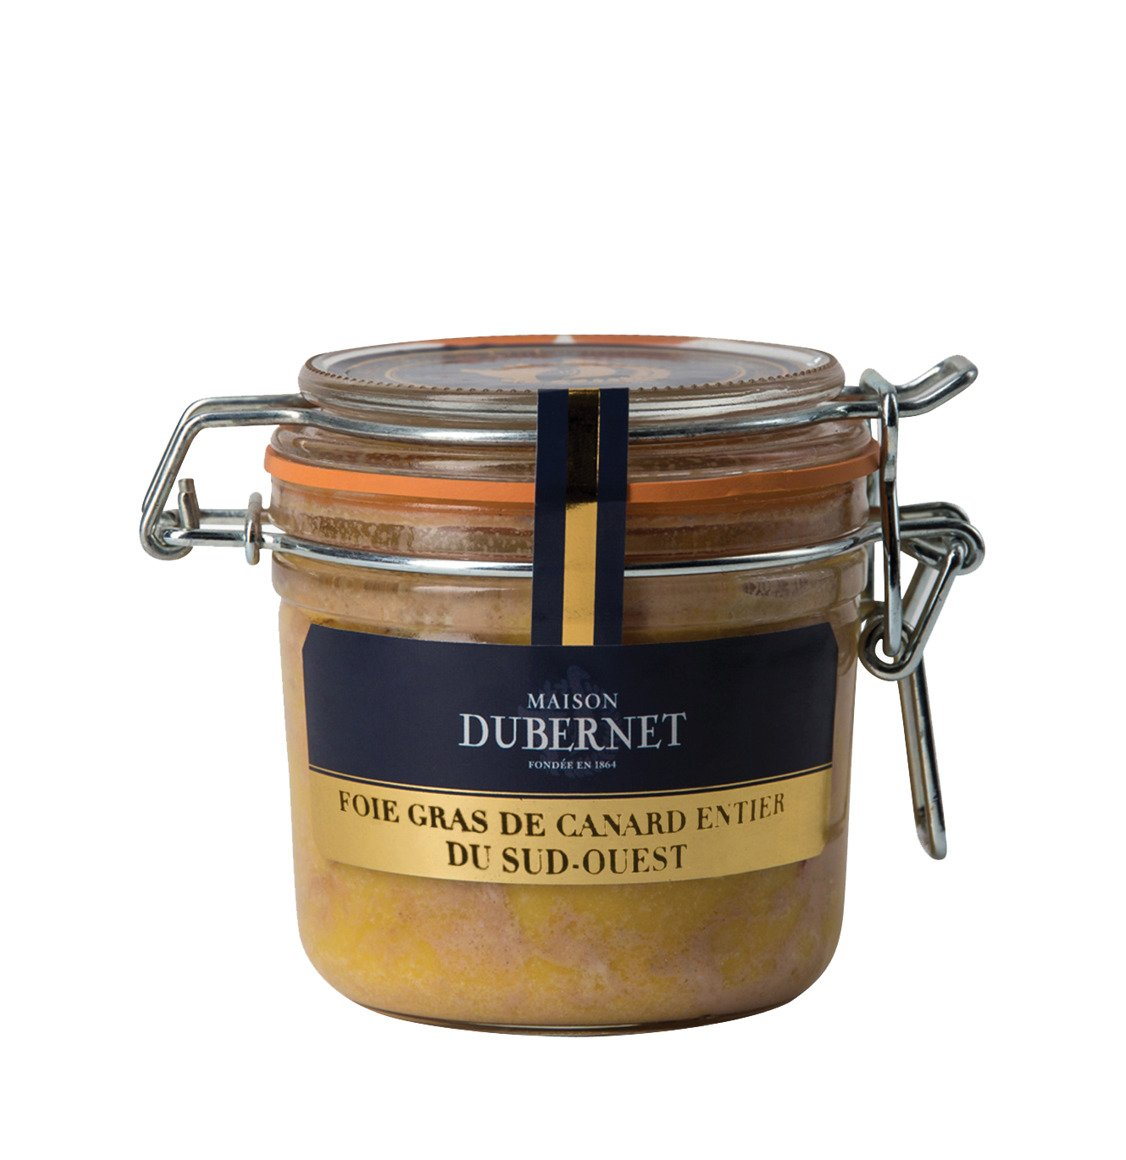 Maison Dubernet Preserved Whole Duck Foie Gras 125g